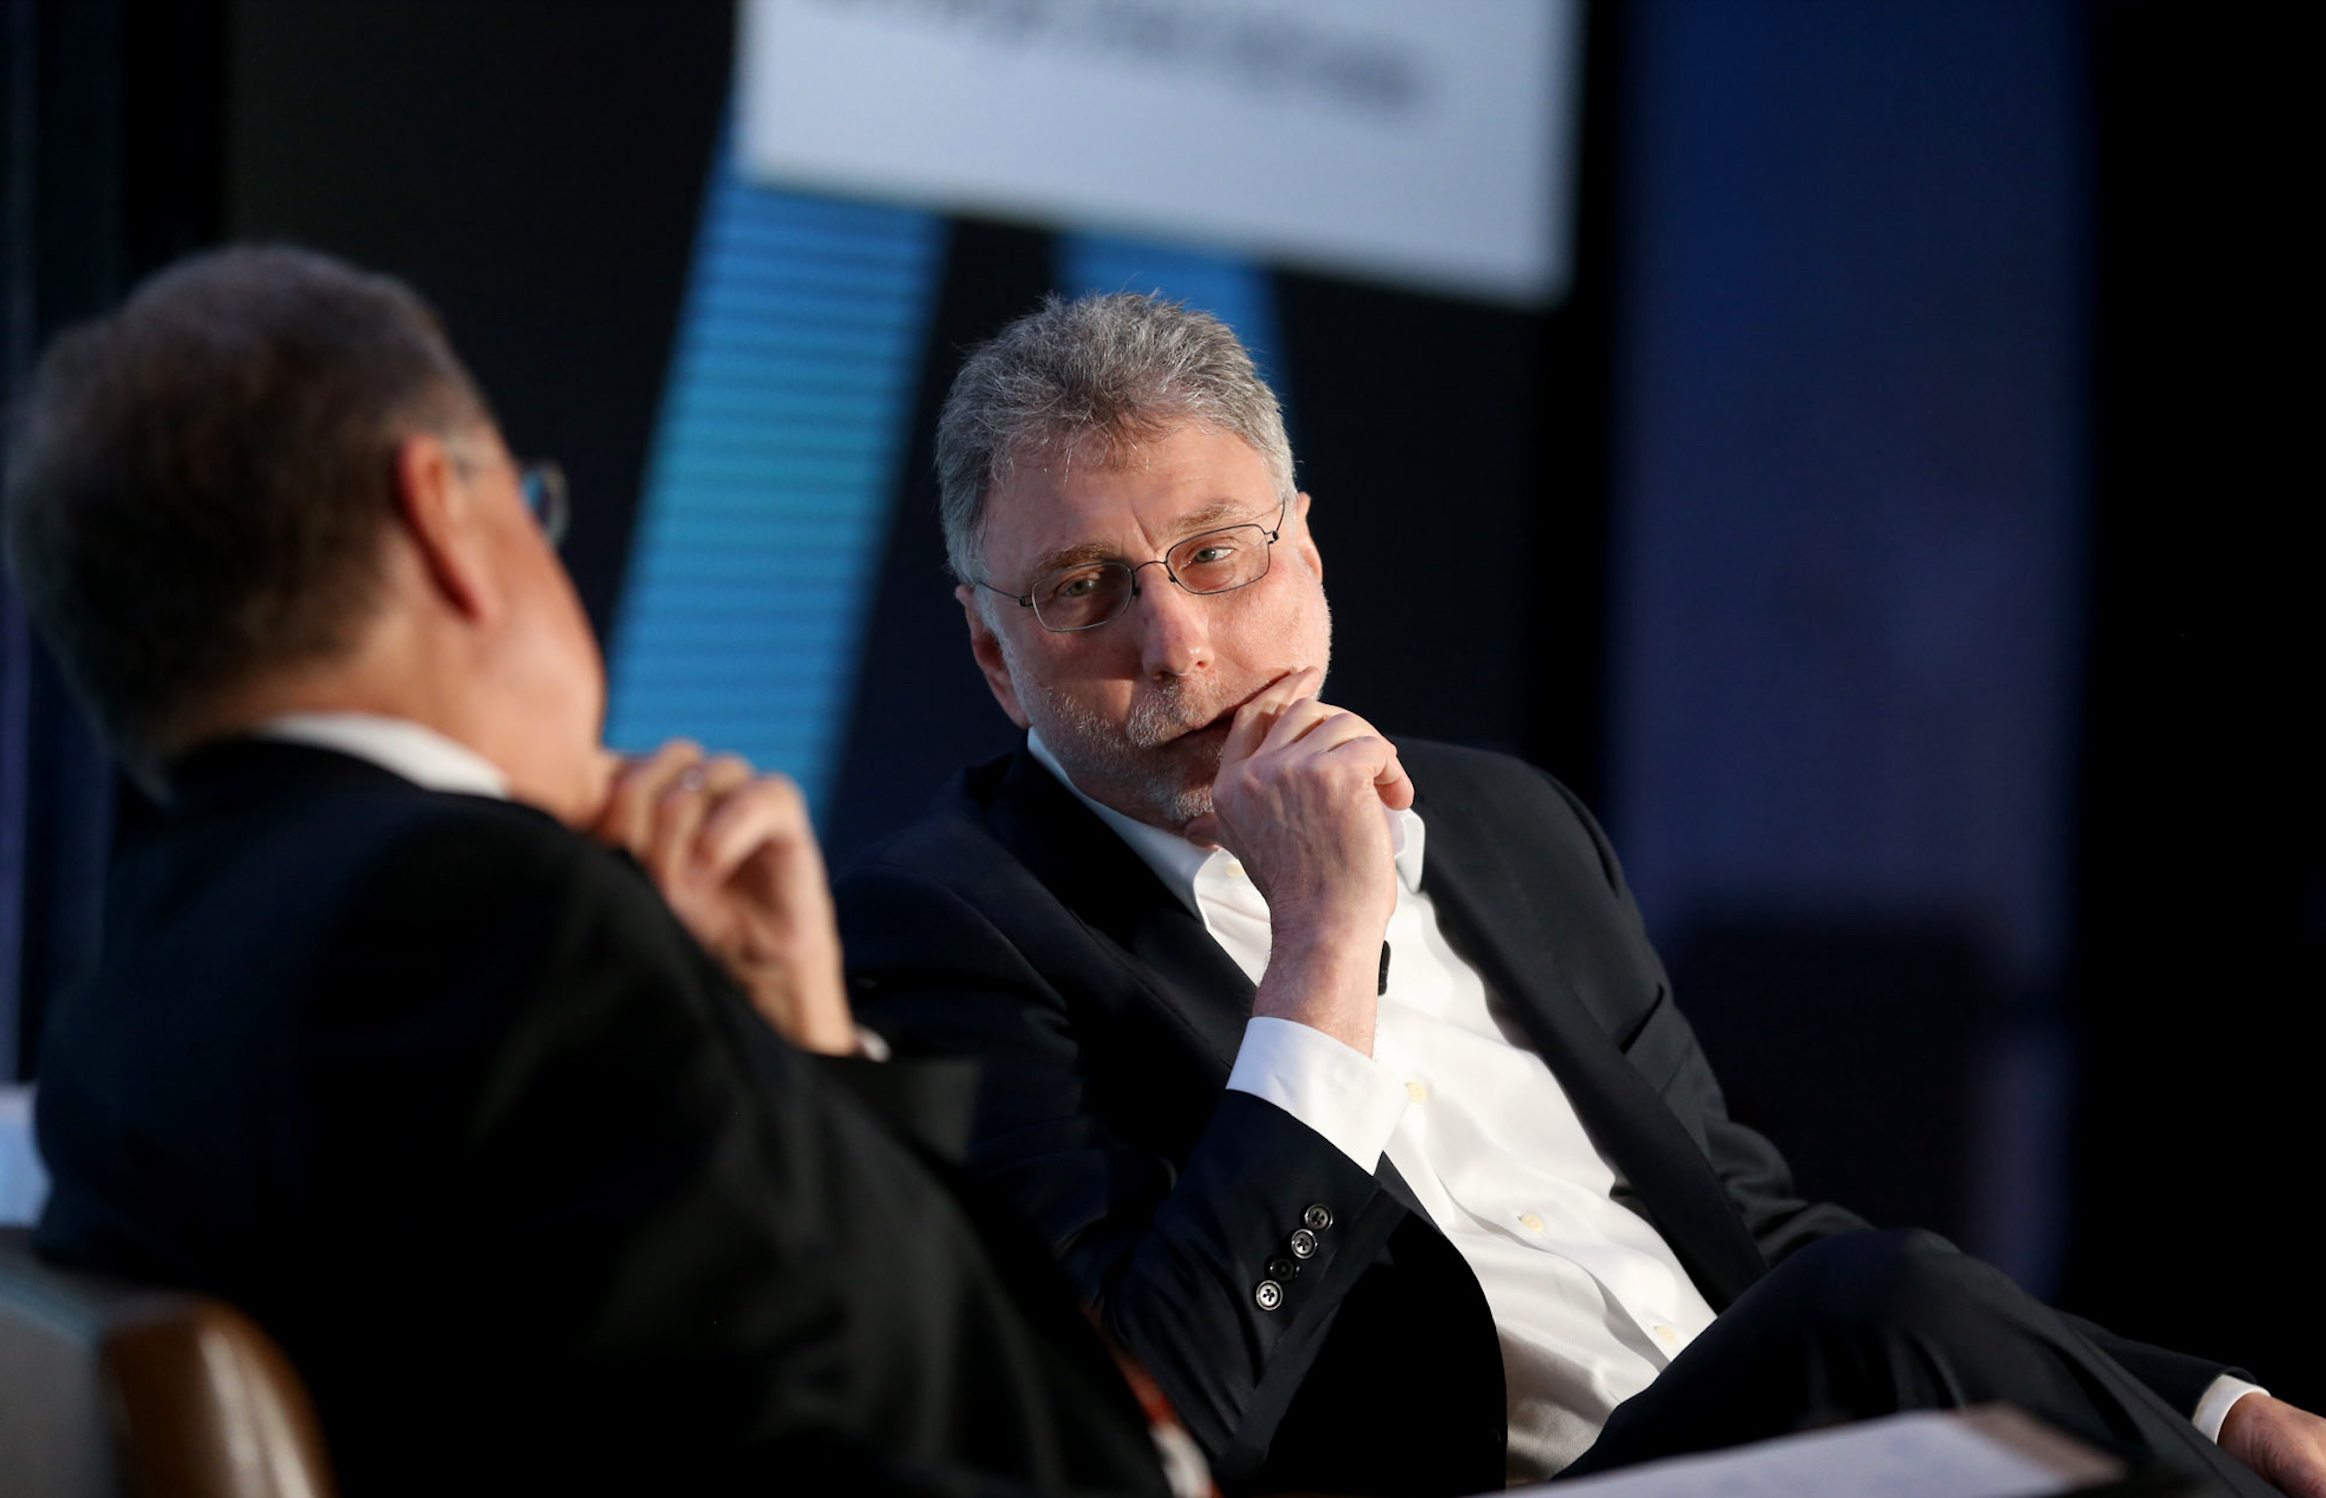 Former Washington Post editor Marty Baron speaking at the Knight Foundation in 2017